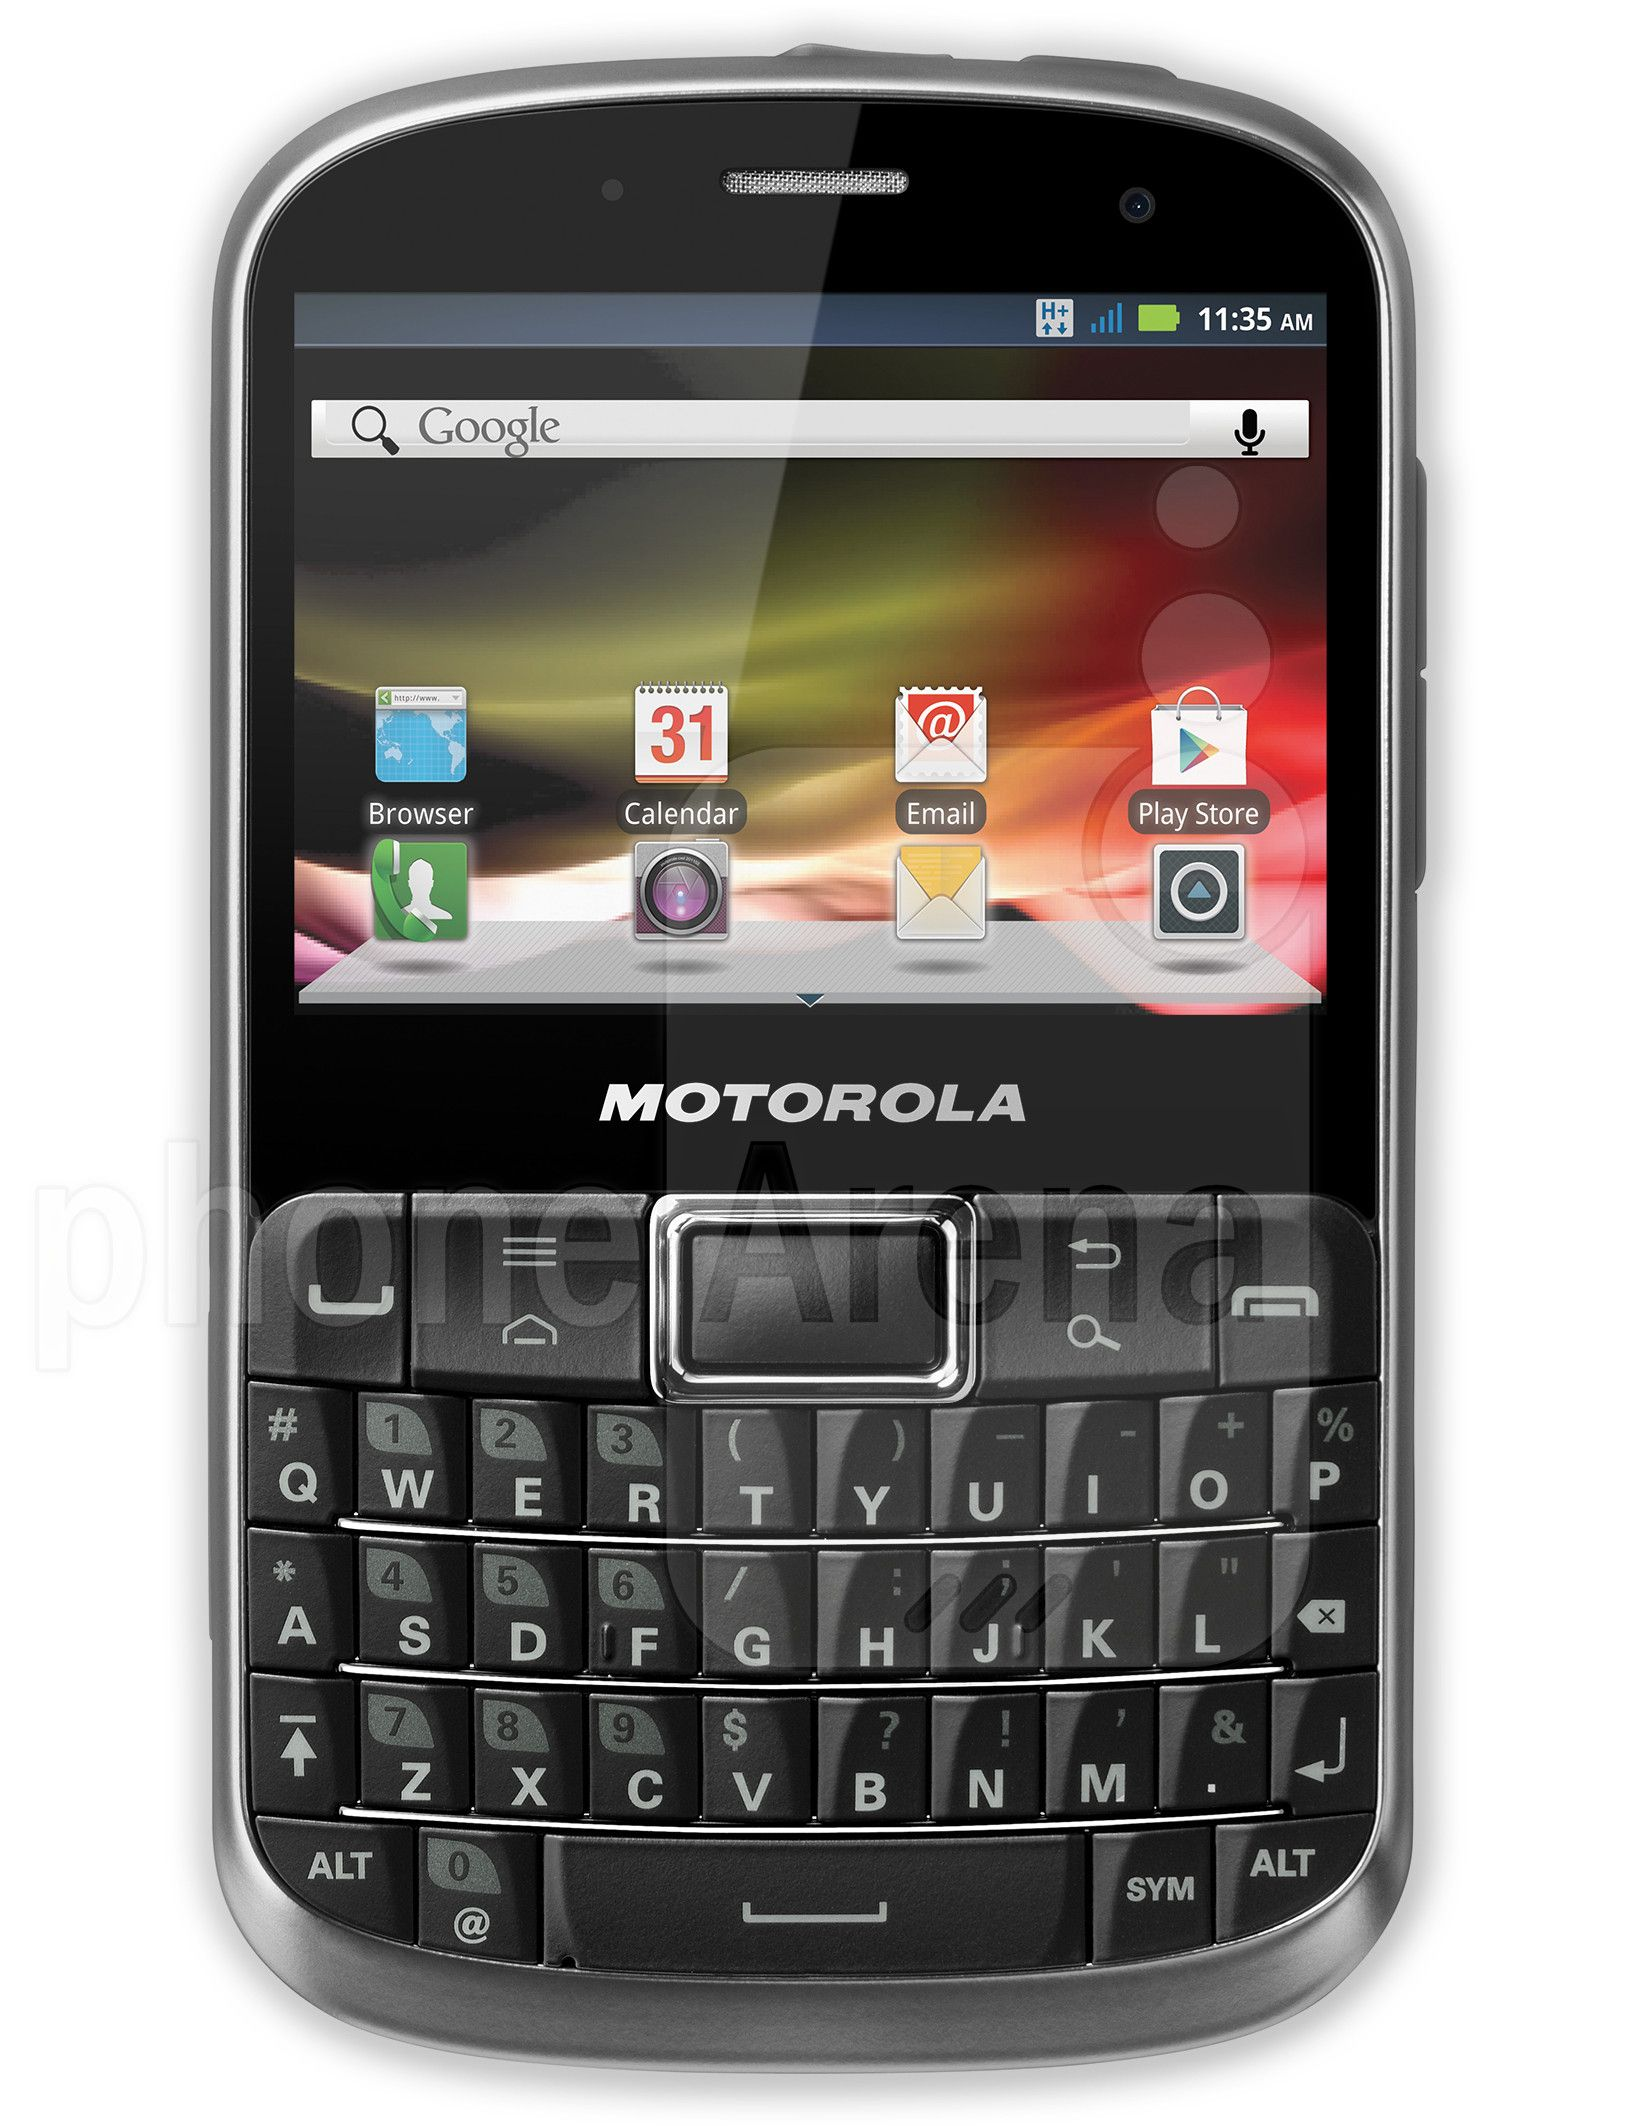 Motorola Defy Pro Finally A Rugged Water Resistant Android Device With Qwerty Keyboard Maybe I Have Found Smart Phone That Will Last As Long My